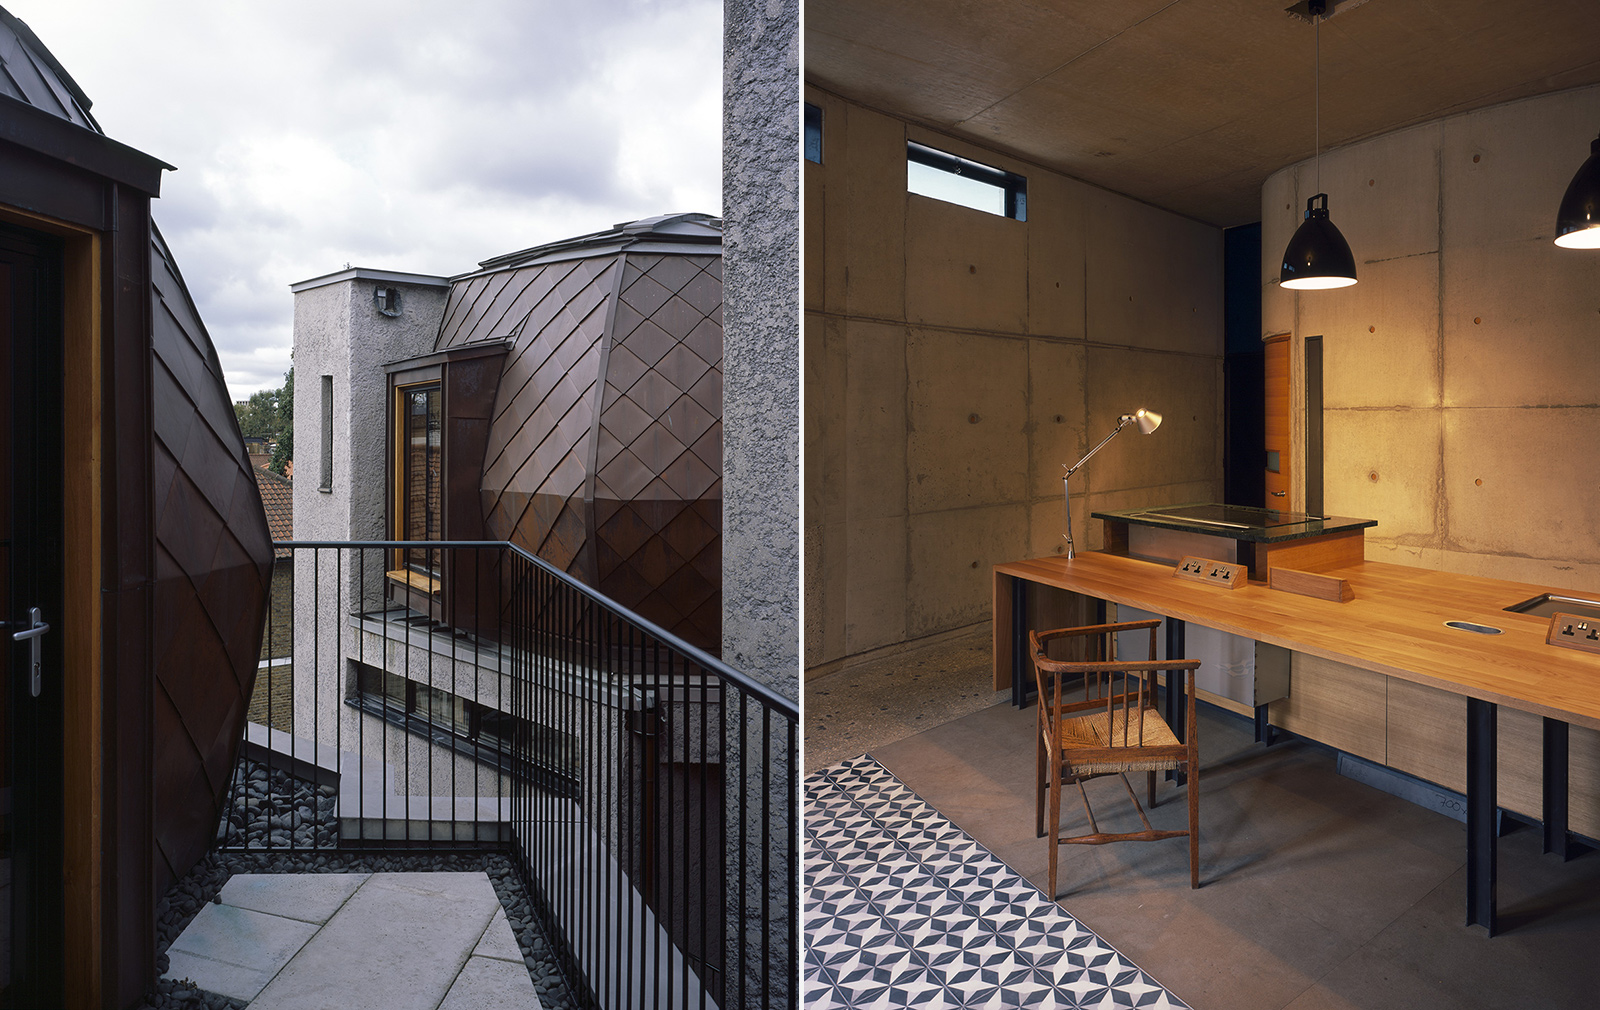 Of The Most Unusual London Homes For Sale Right Now - Architect designed homes for sale